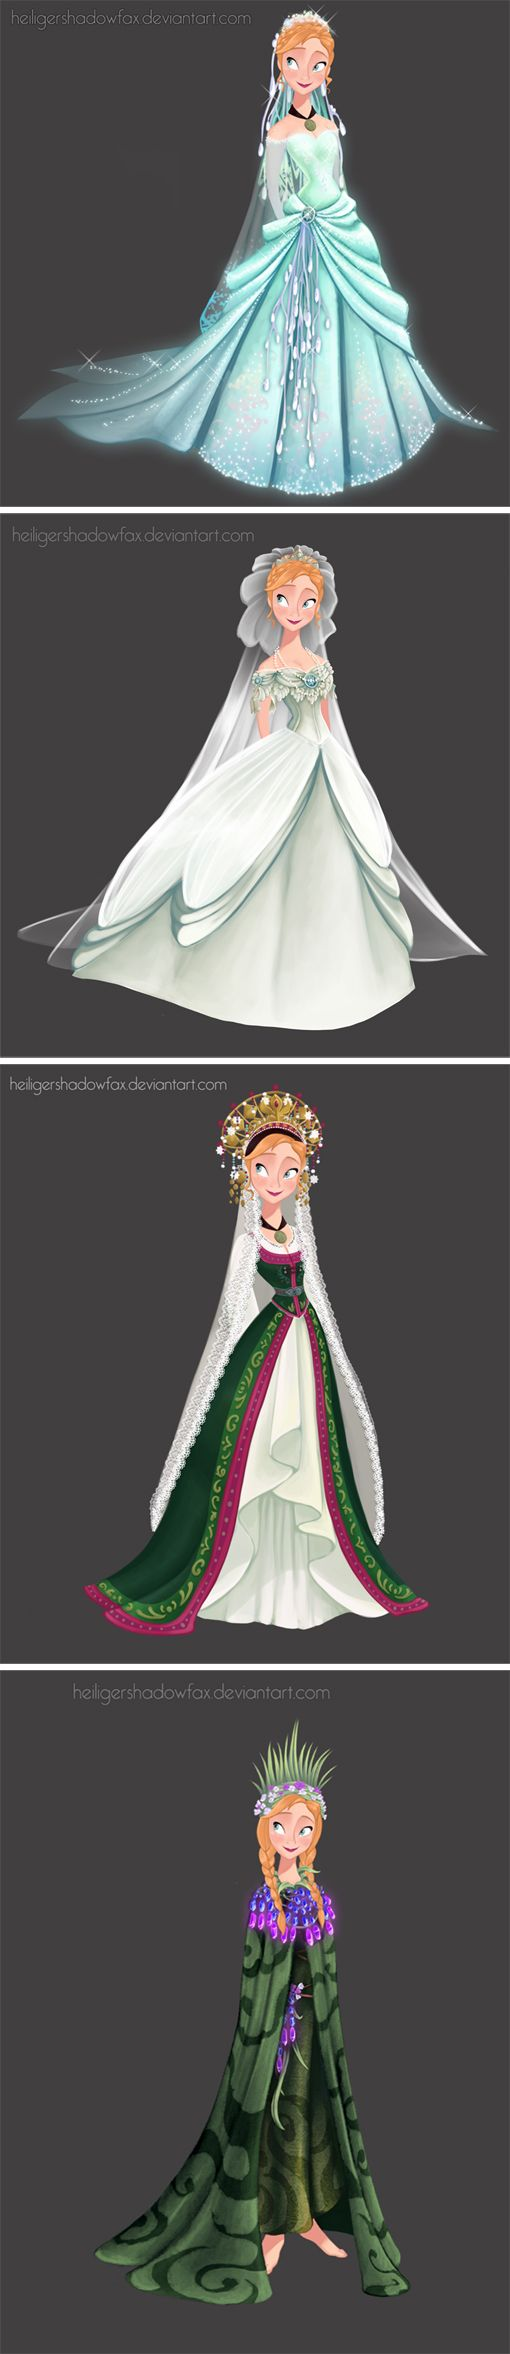 """wedding dress for Anna by *HeiligerShadowfax* ▲1-""""Sky Awake"""". I imagine this dress was made by Elsa with her magic for the sister's wedding… 2-""""imperial"""" 3-""""folk"""" norwegian bride's dress 4-Troll Wedding"""